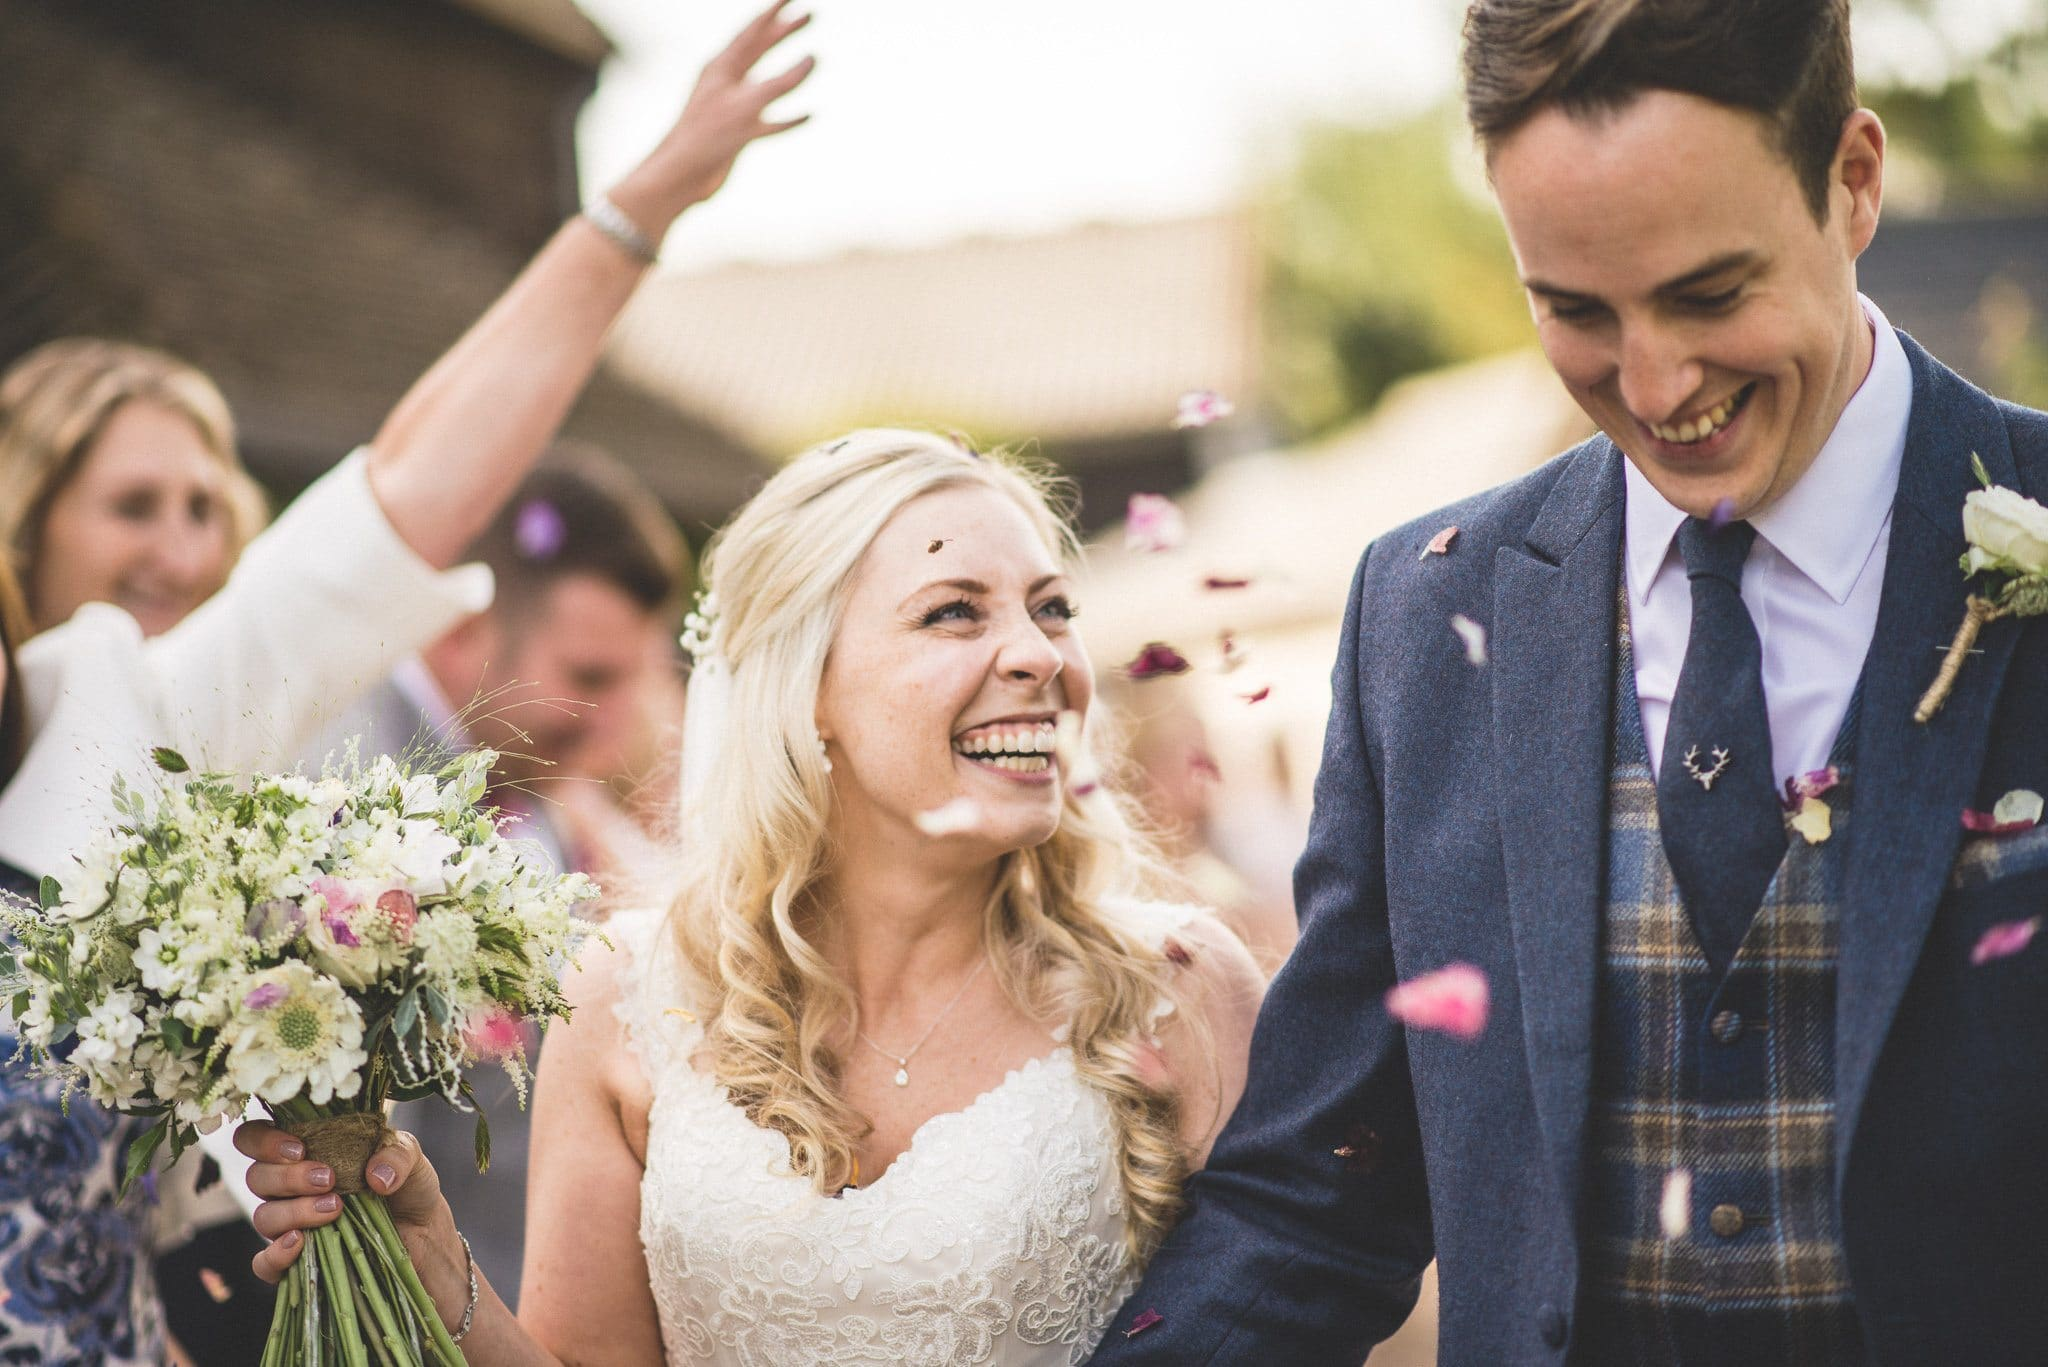 Emma looks at her groom and laughs as the confetti keeps on coming!